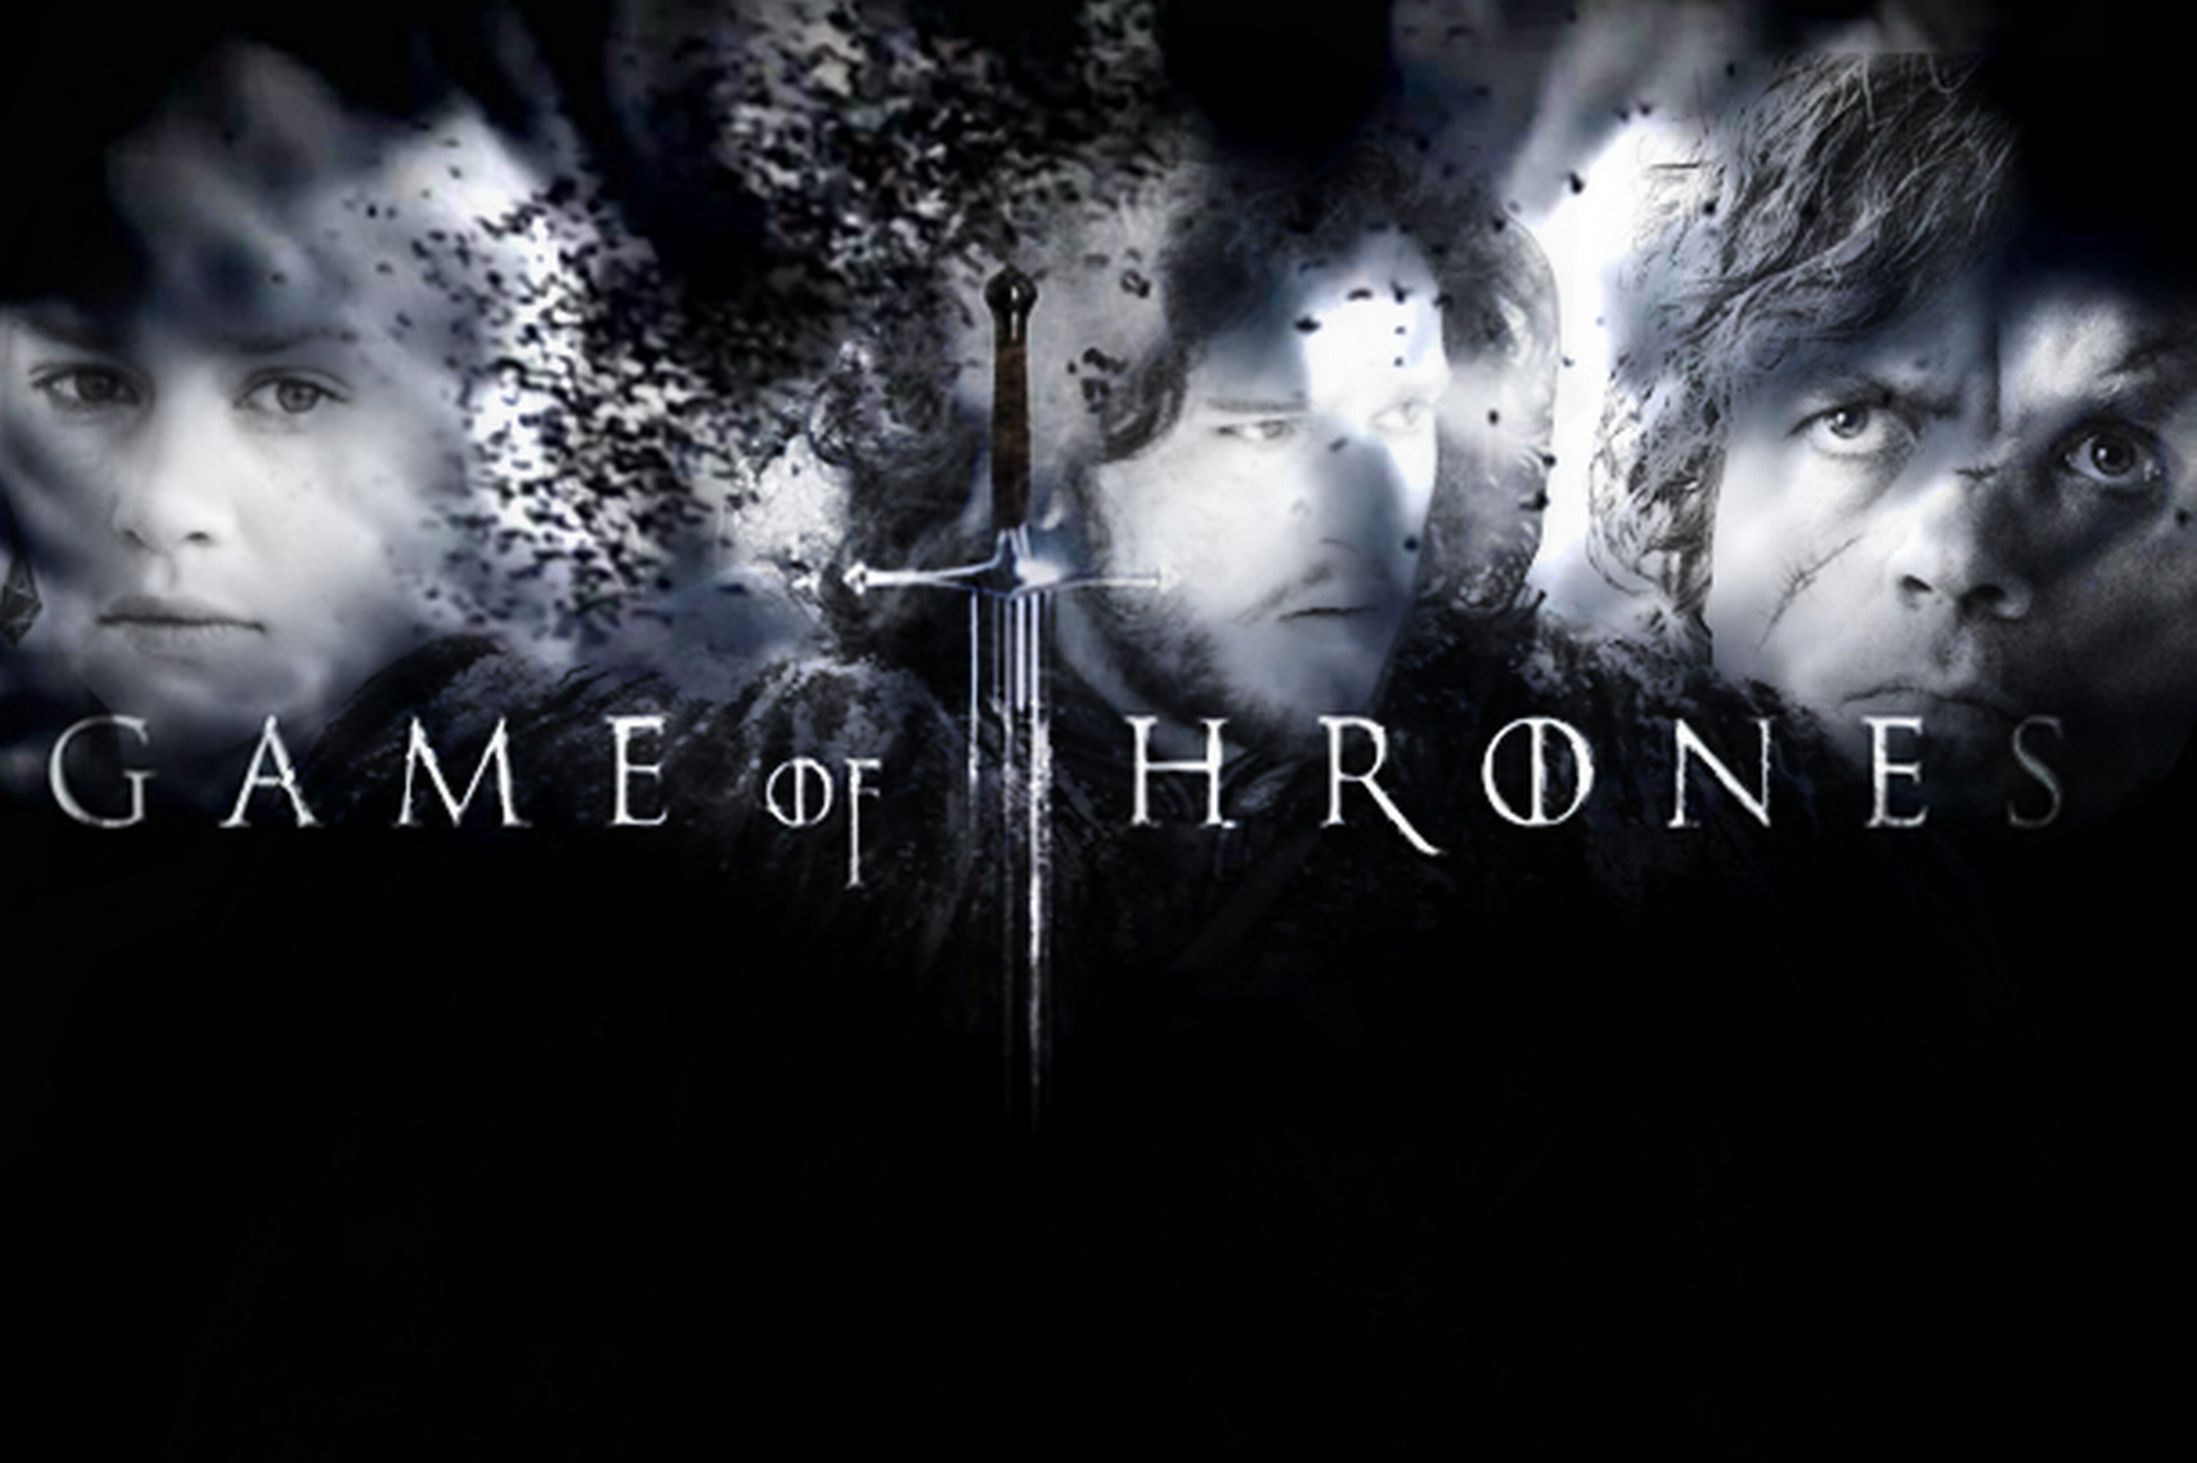 Game of Thrones Wallpapers High Resolution and Quality ...